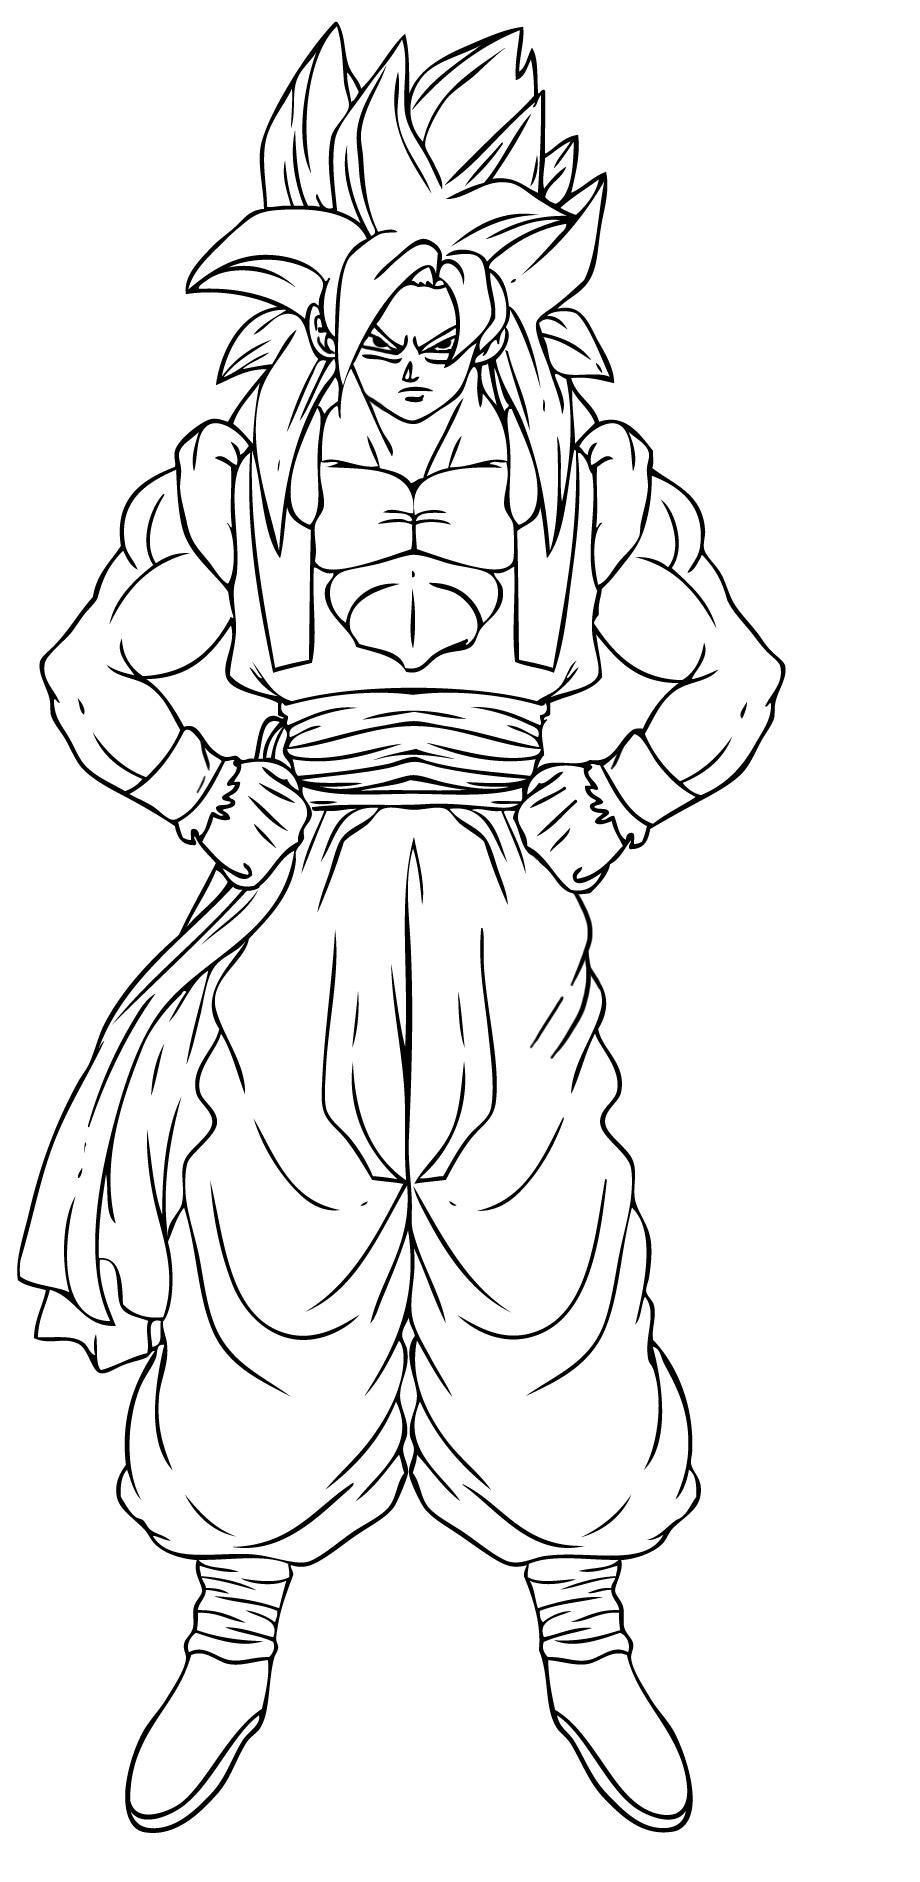 dragon ball coloring pictures free printable dragon ball z coloring pages for kids coloring dragon pictures ball